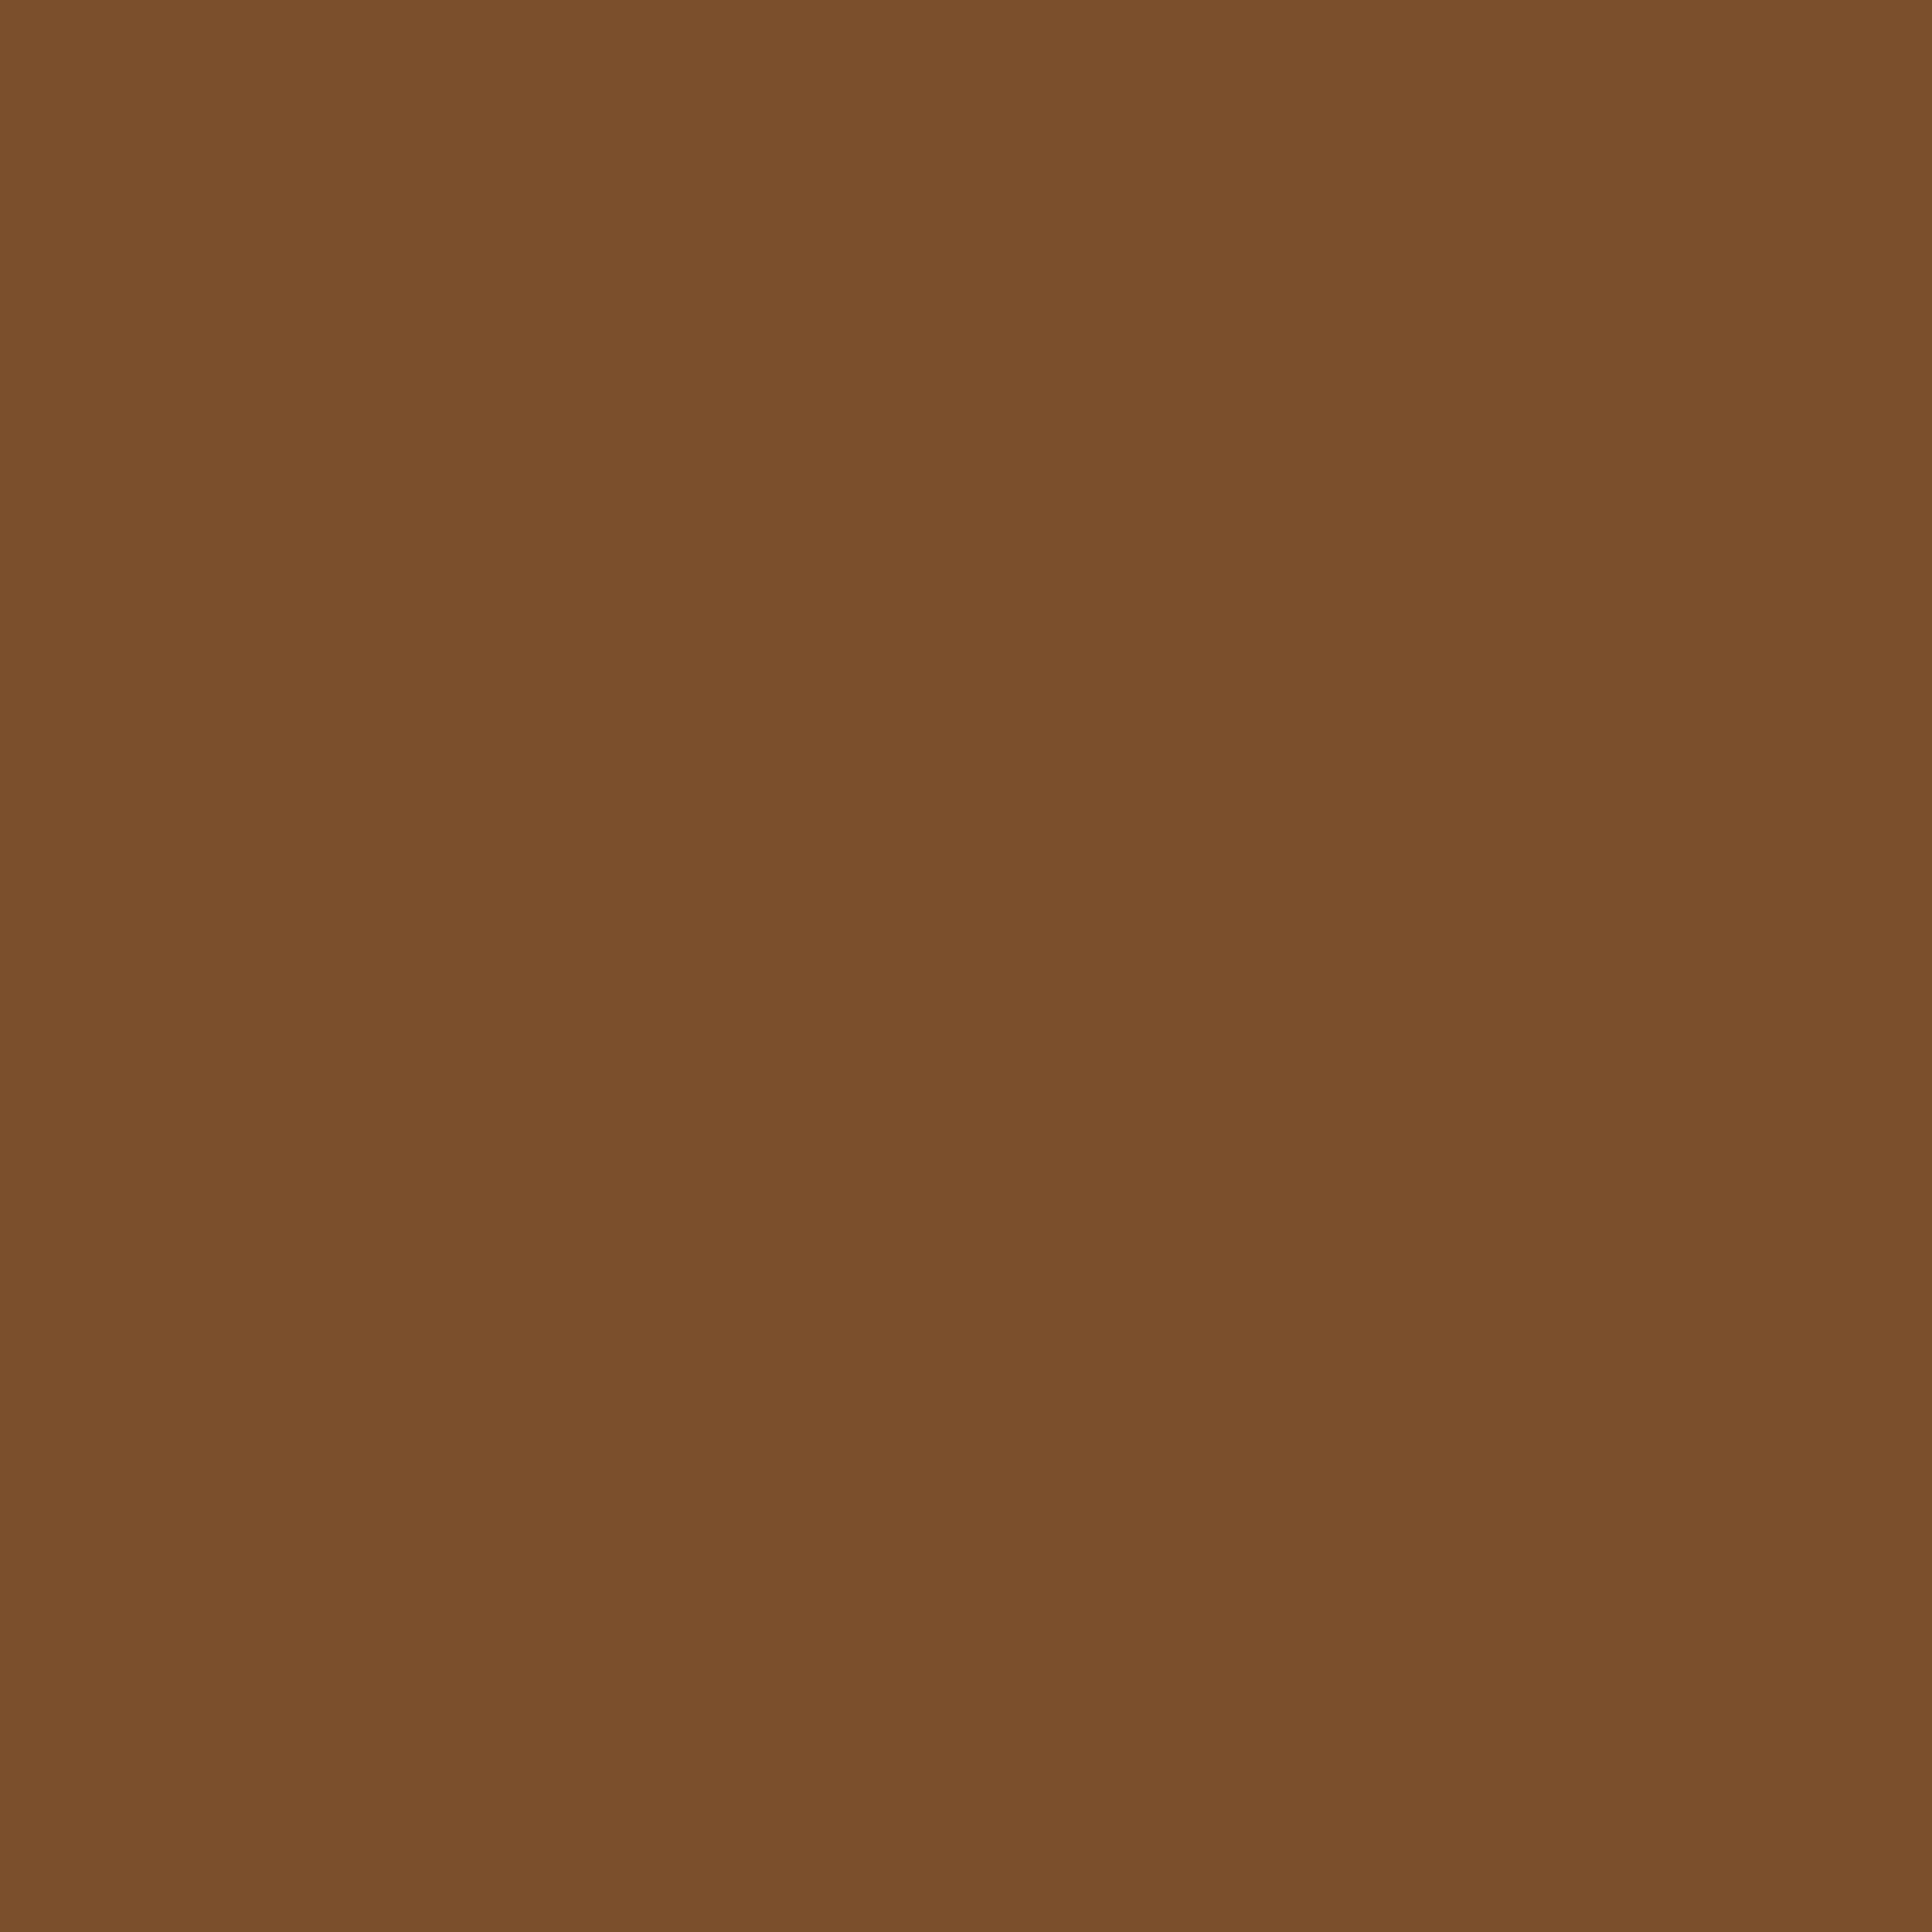 File:Solid brown.svg - Wikimedia Commons